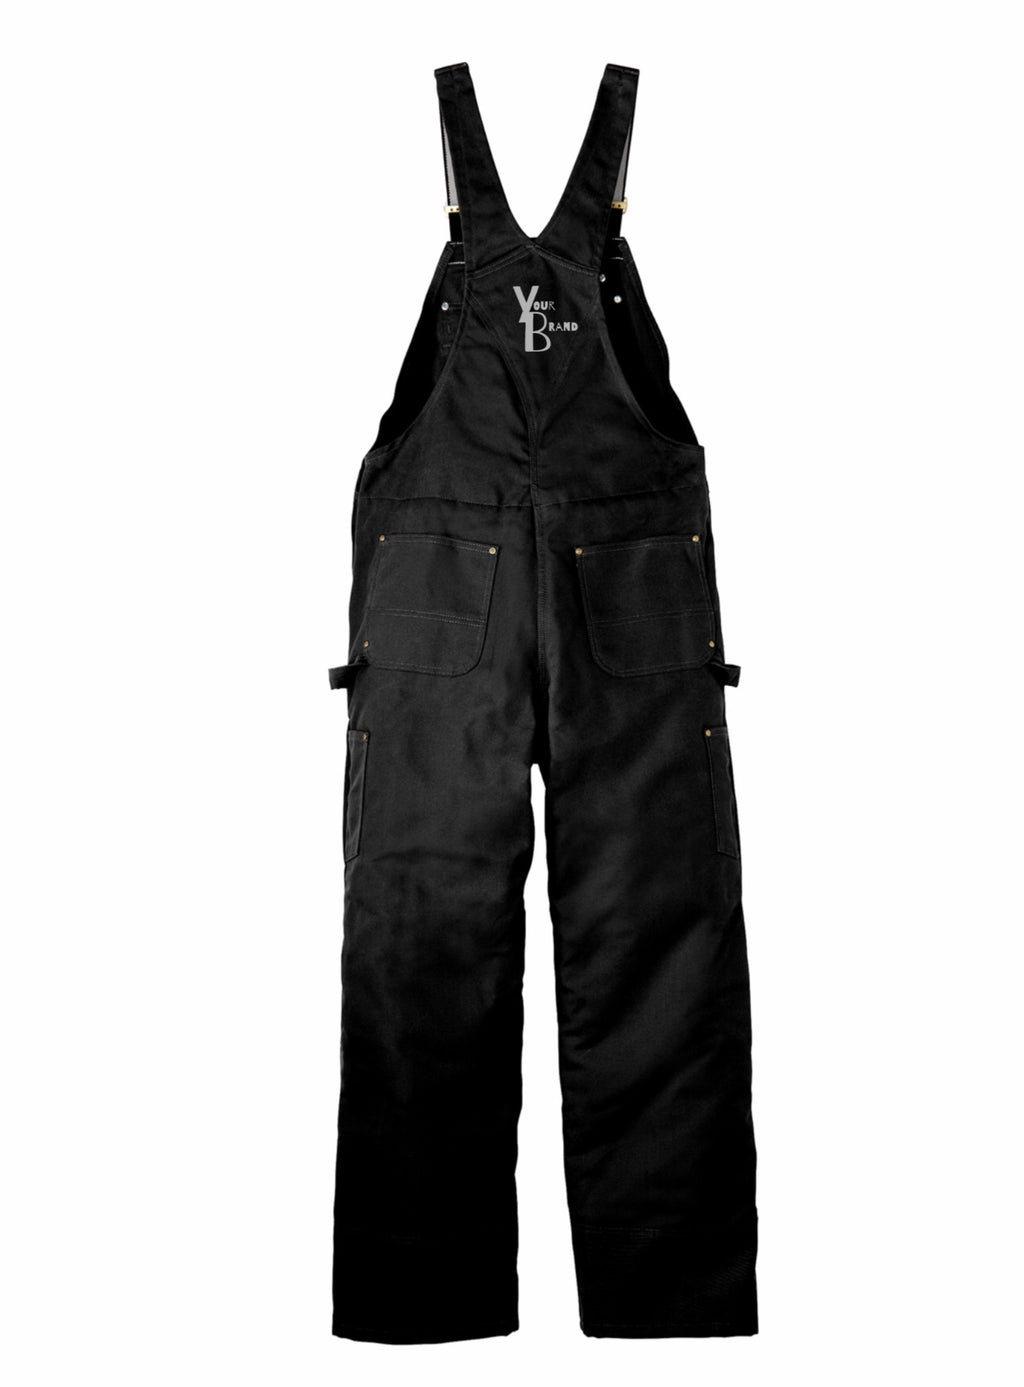 Just Your Brand Carhartt Duck Quilt-Lined Zip-To-Thigh Bib Overalls